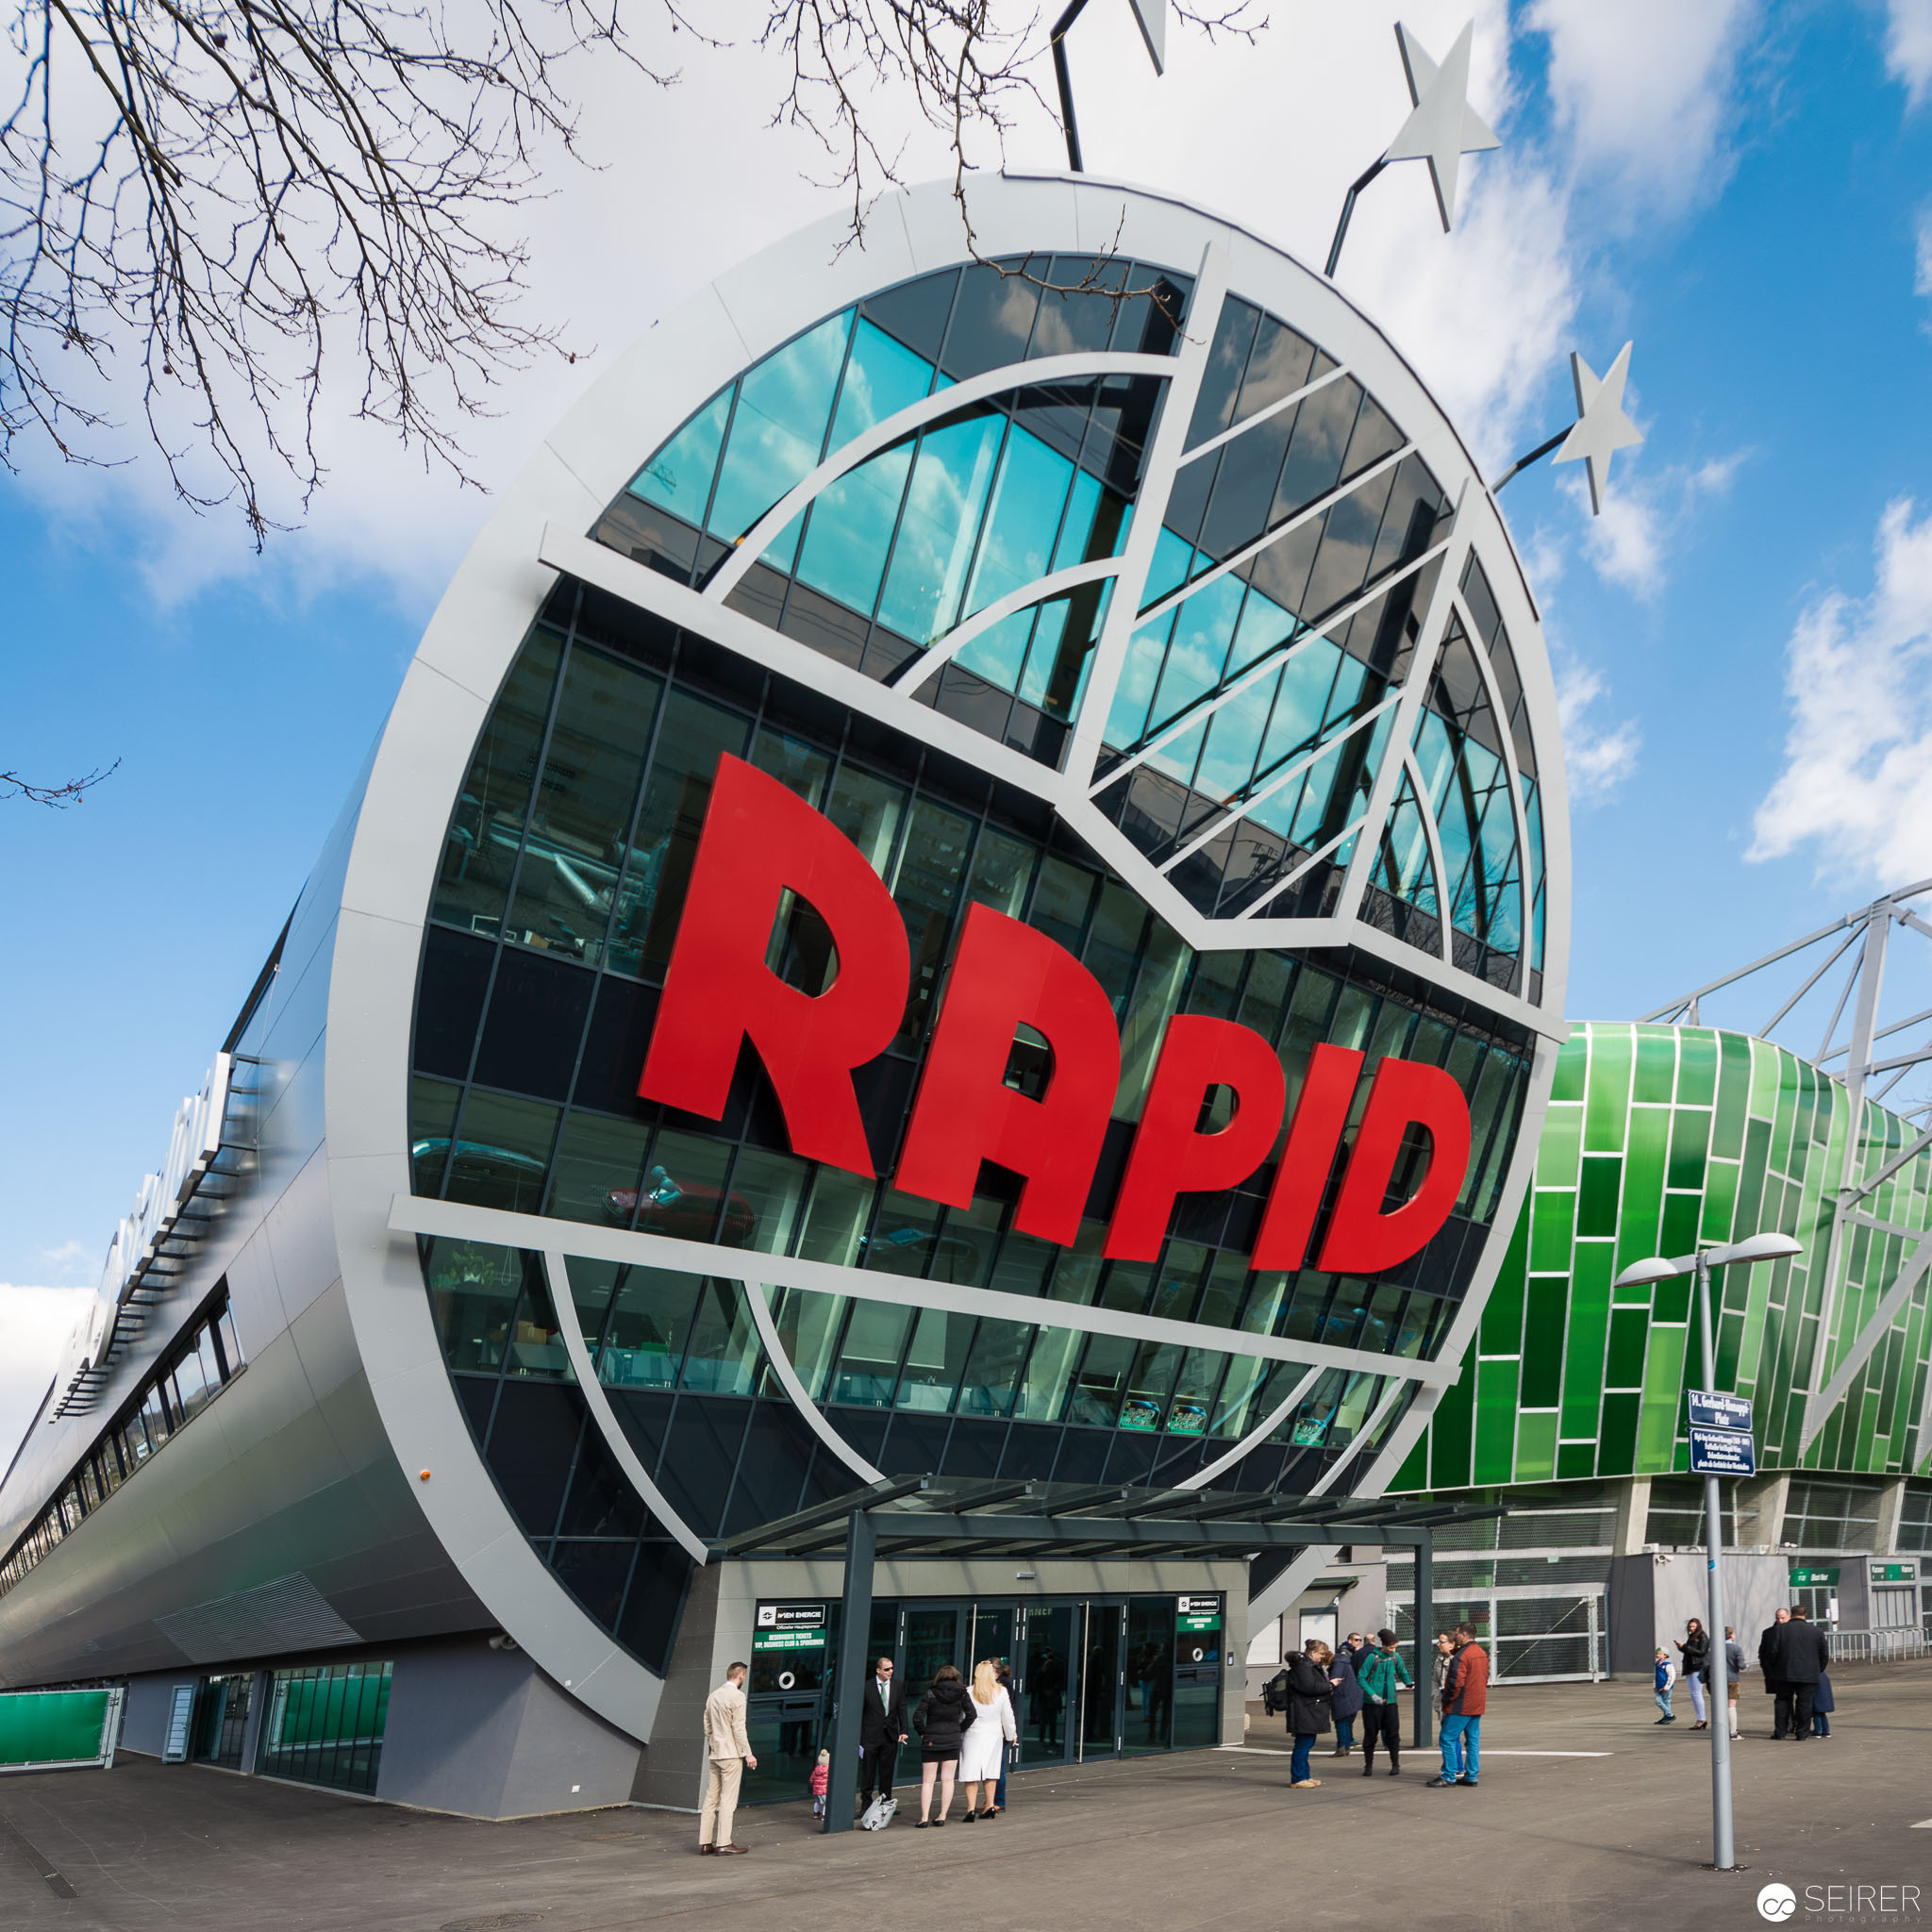 20170311_140717_rapid_allianzstadion_.jpg